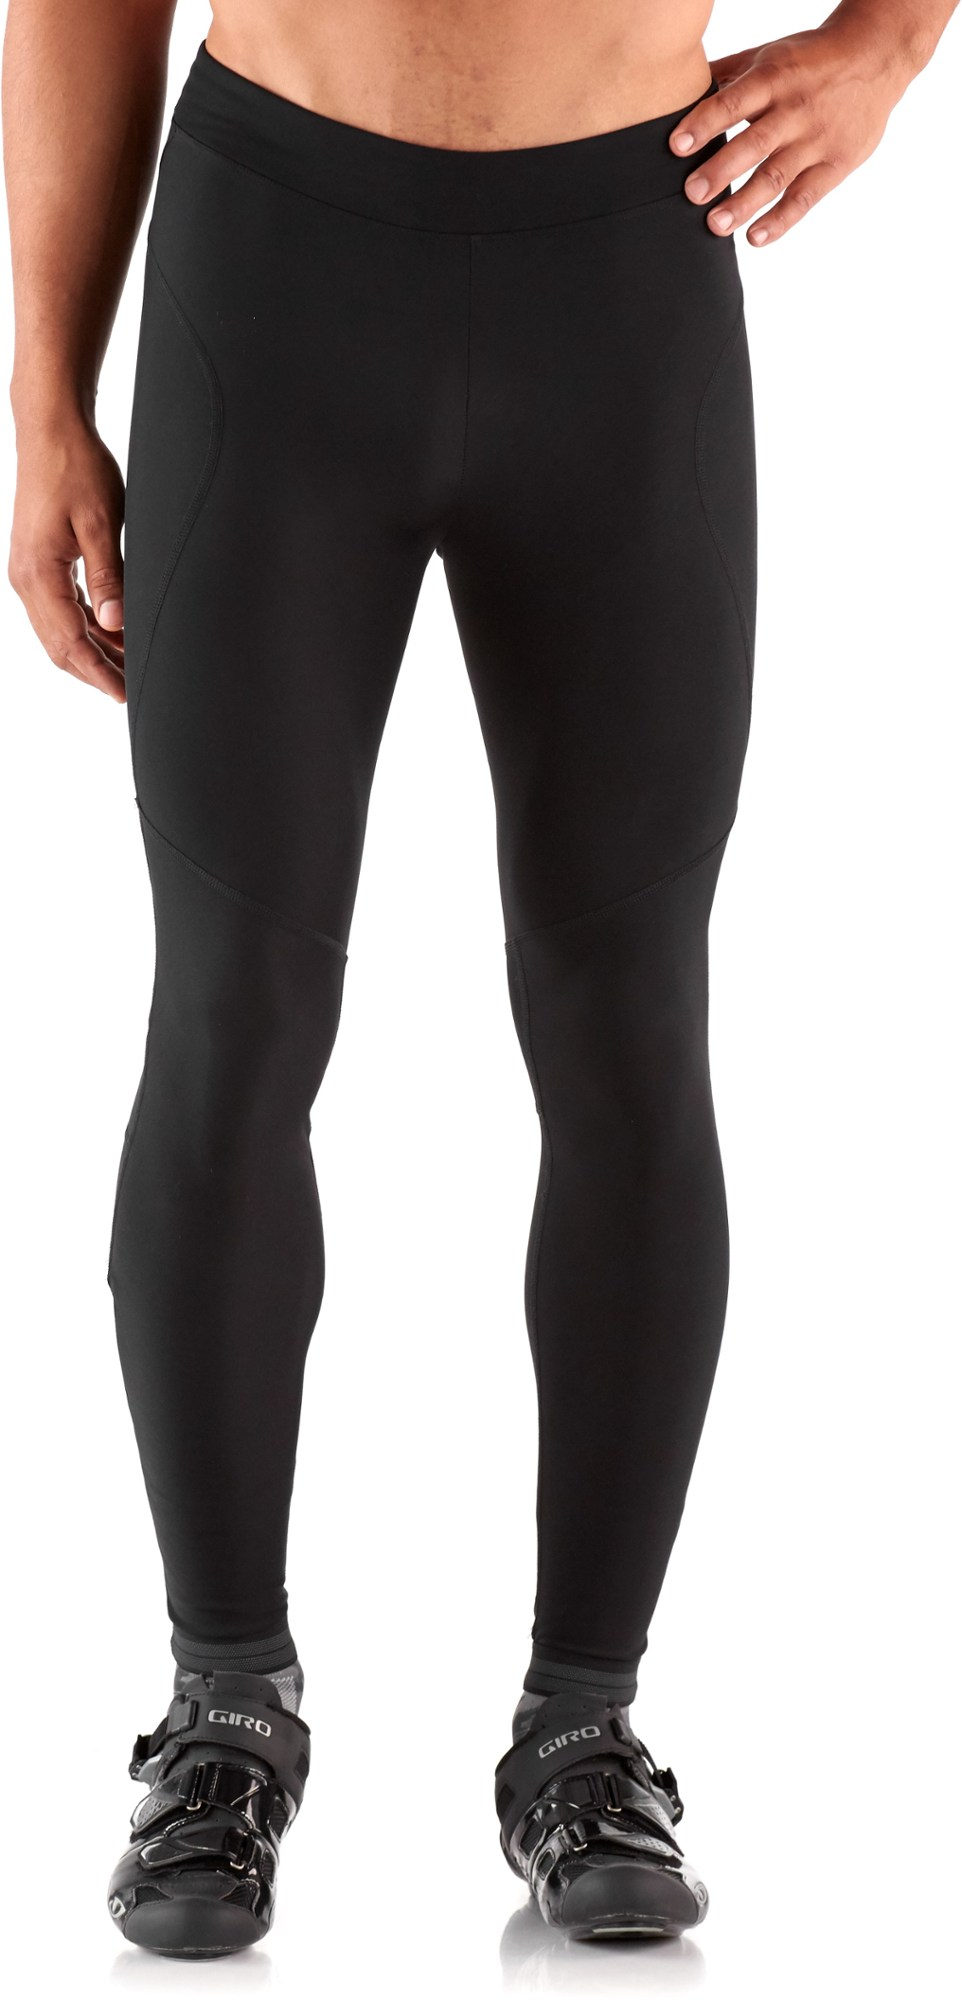 Co-op Cycles Thermal Tights - Men's